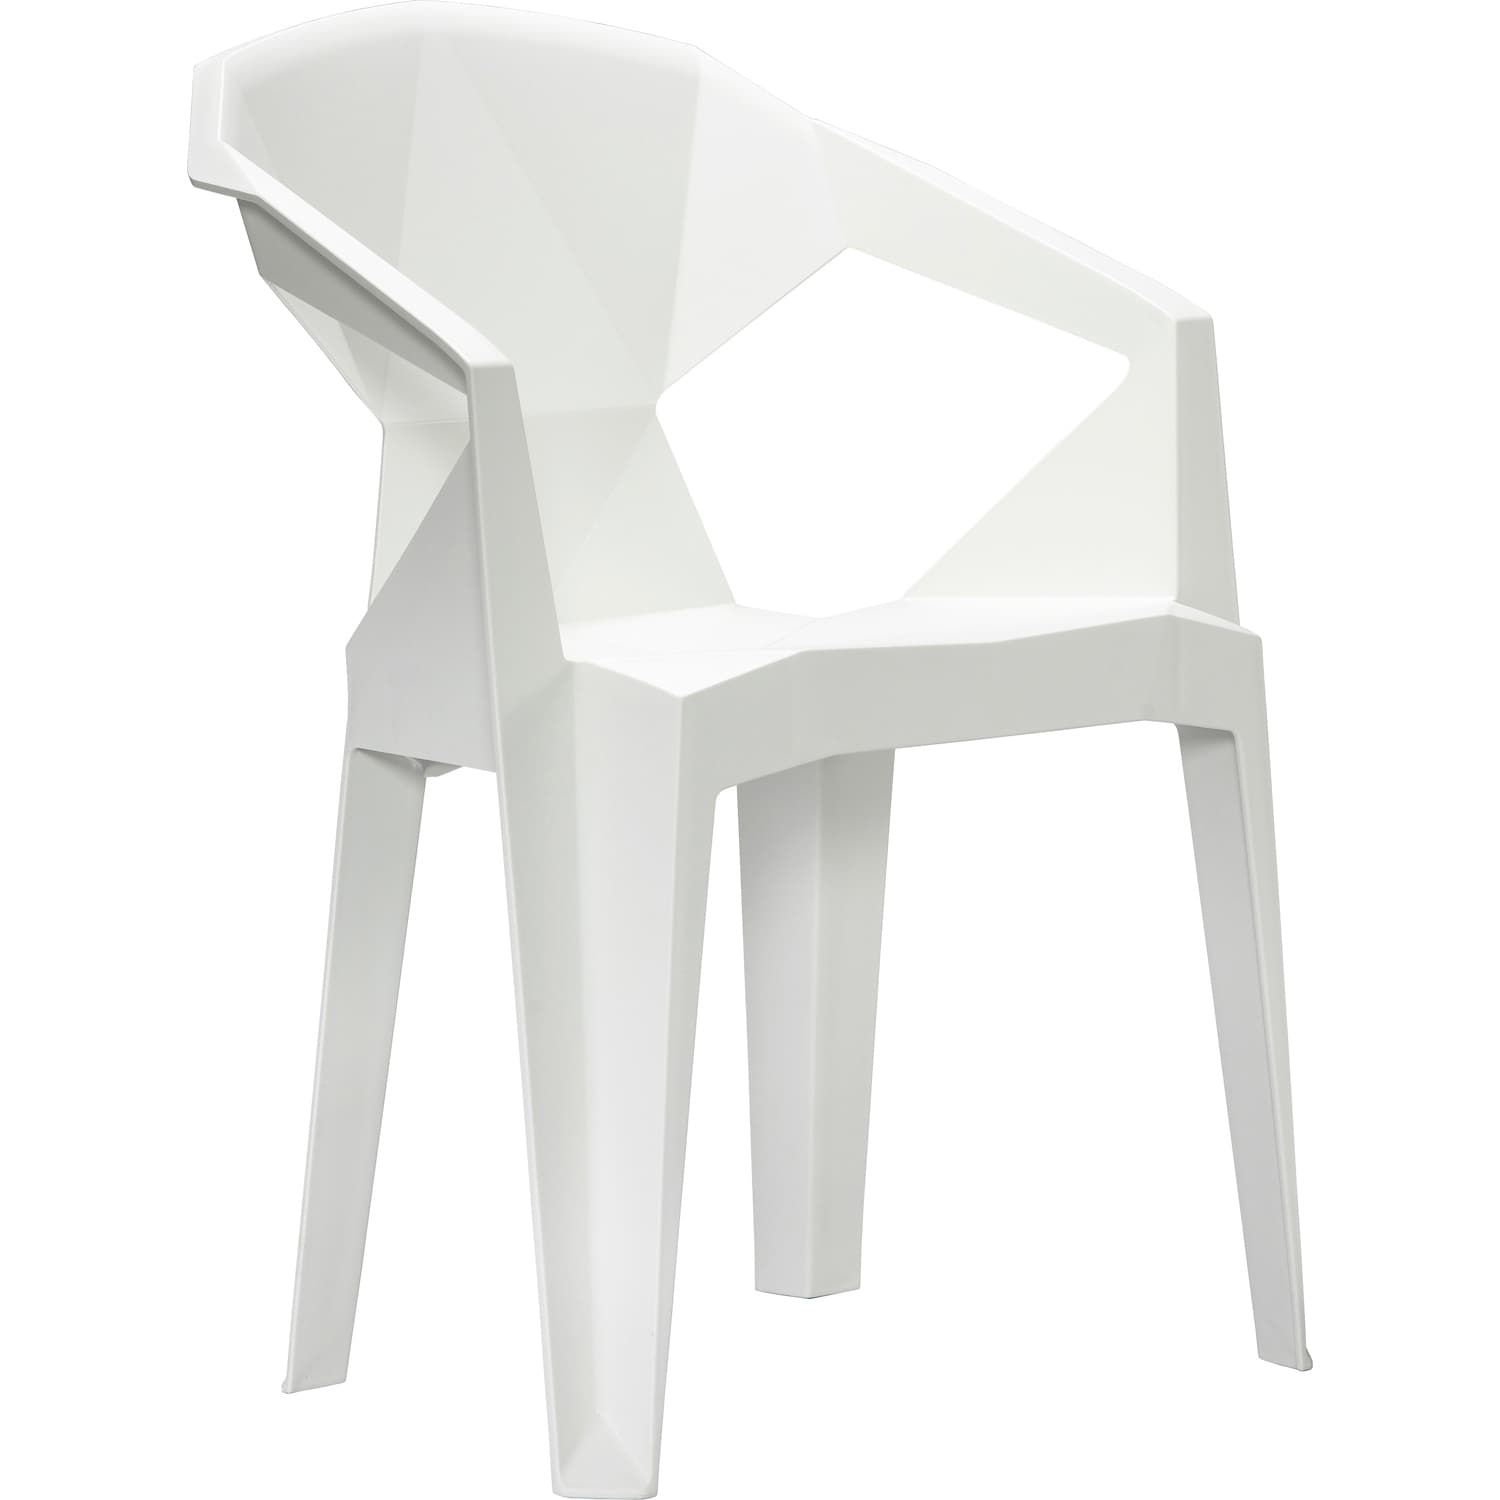 Astoria White Stacking Chair Set of 2